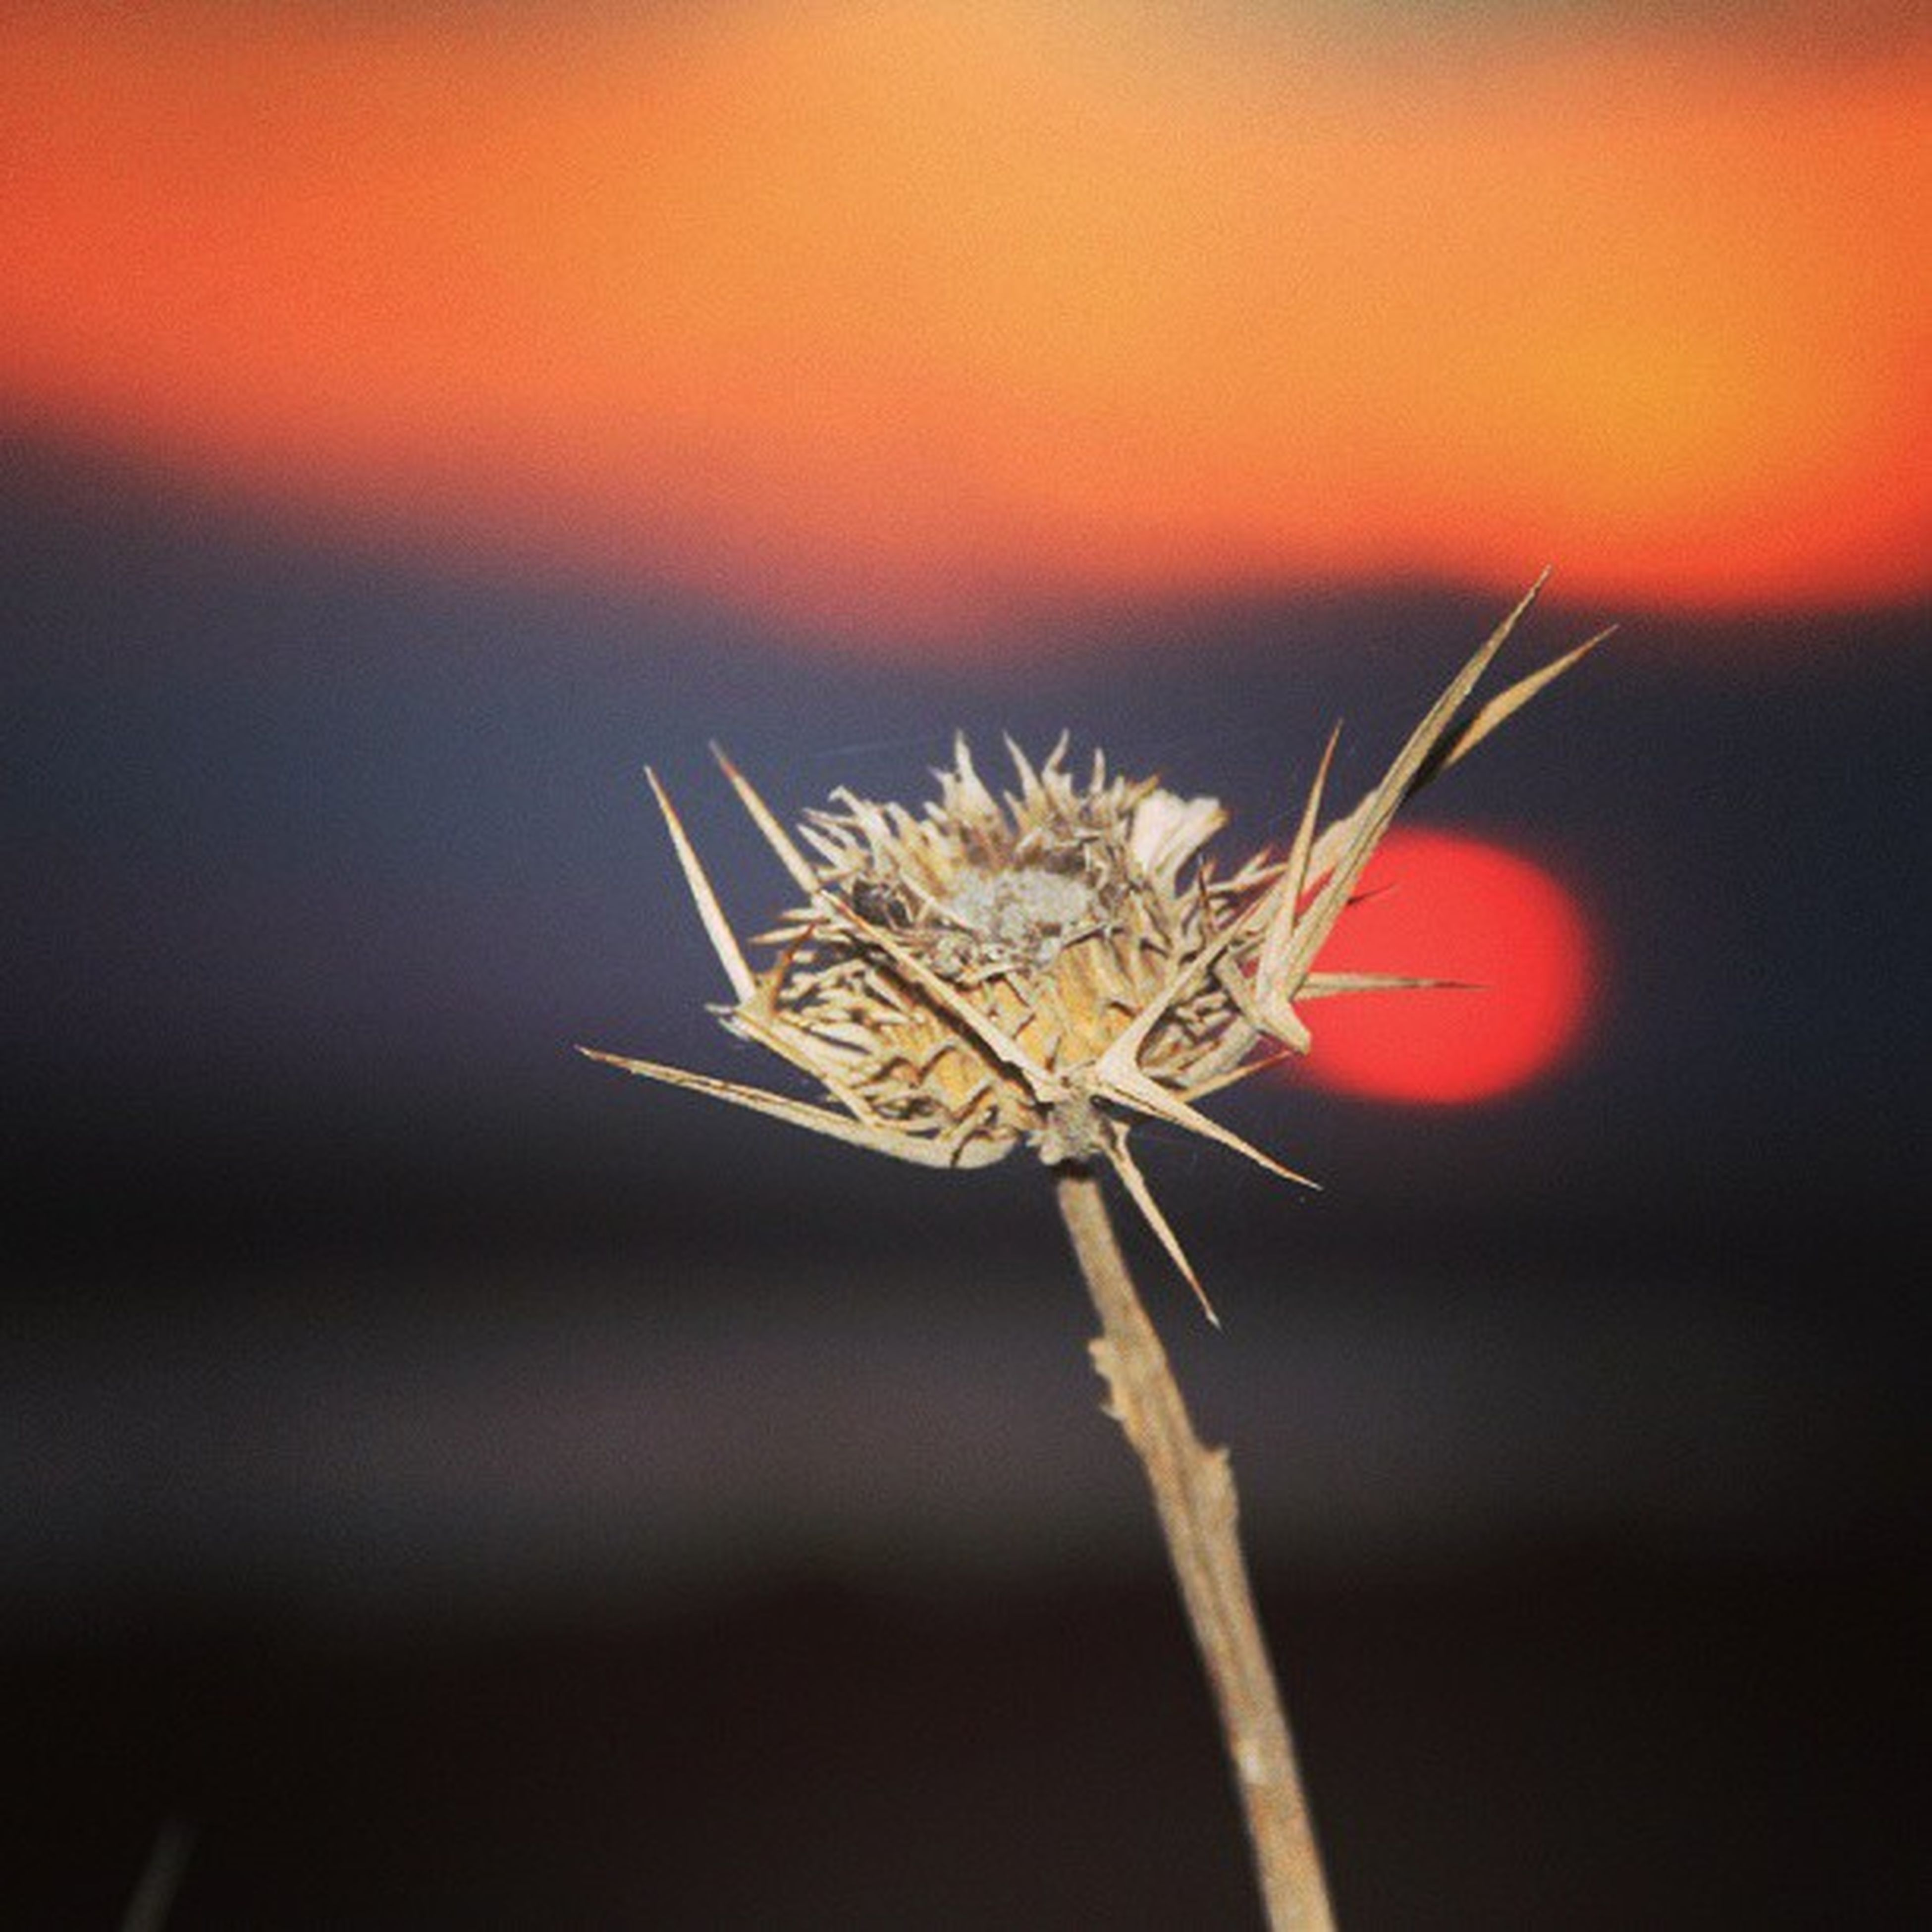 sunset, close-up, focus on foreground, flower, orange color, stem, beauty in nature, fragility, nature, red, plant, selective focus, growth, single flower, no people, outdoors, freshness, flower head, dry, tranquility